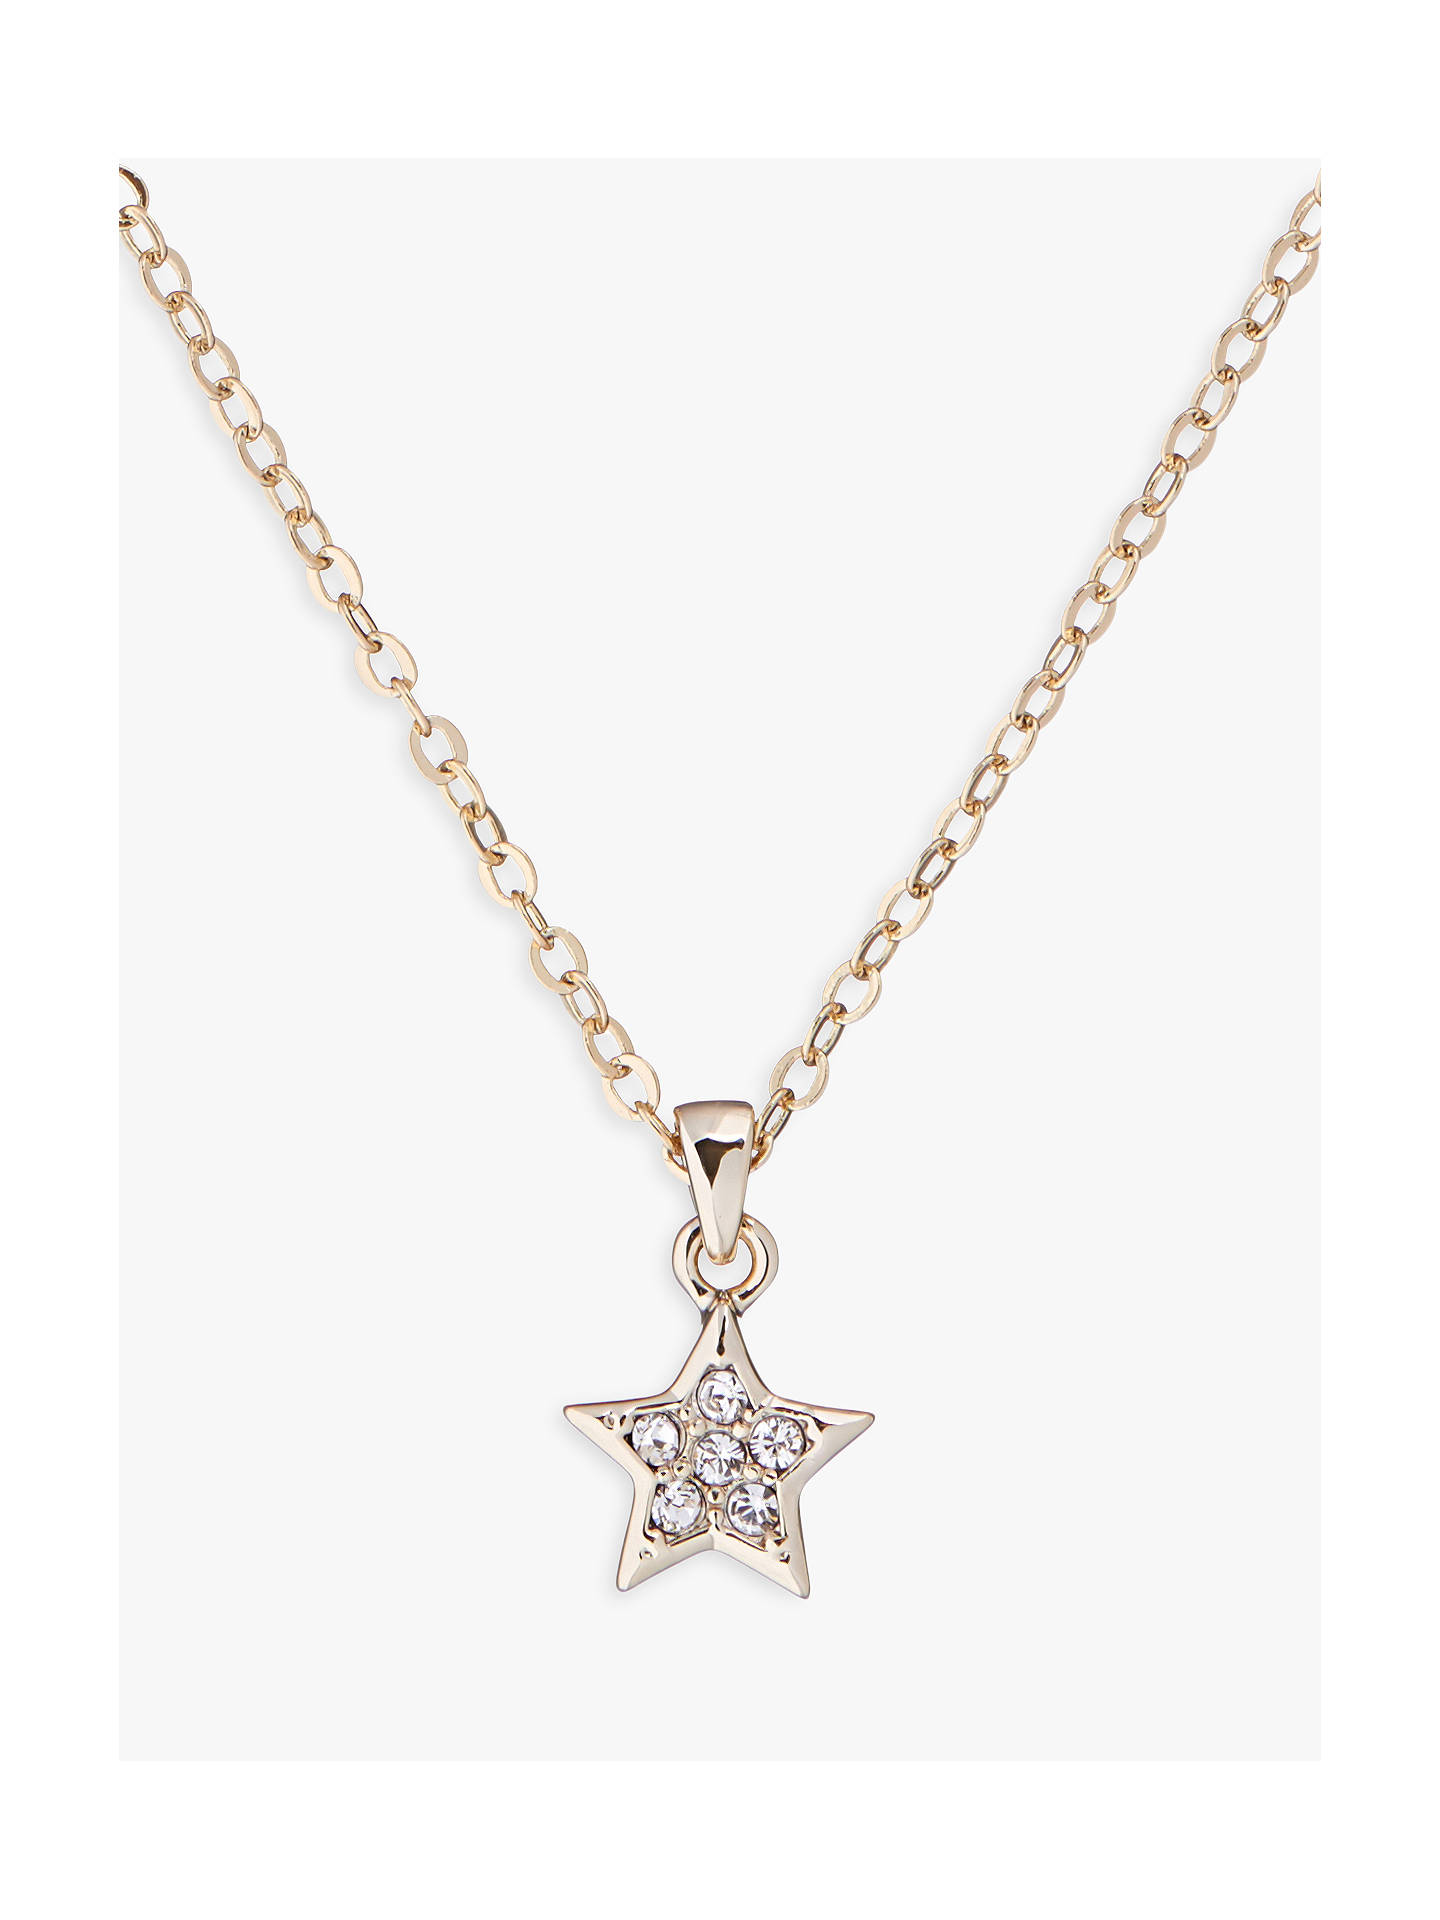 BuyTed Baker Saigi Swarovski Crystal Star Pendant Necklace, Pale Gold Online at johnlewis.com